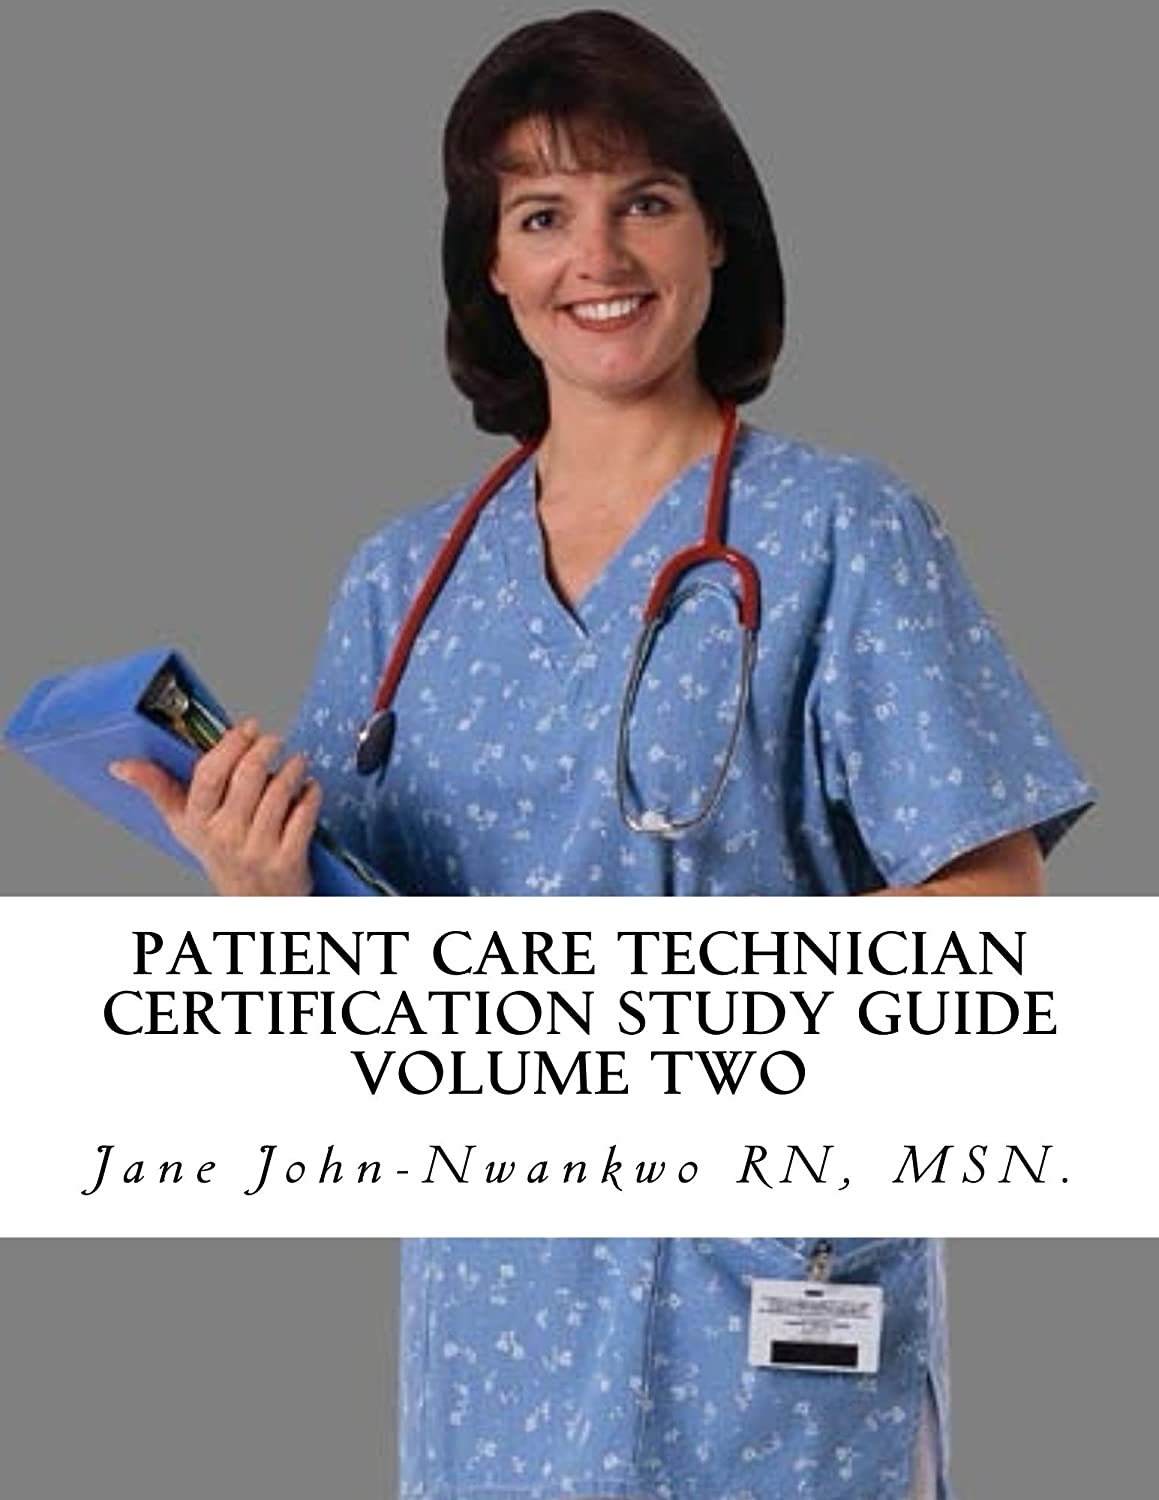 Amazon 10 Patient Care Technician Certification Study Guide